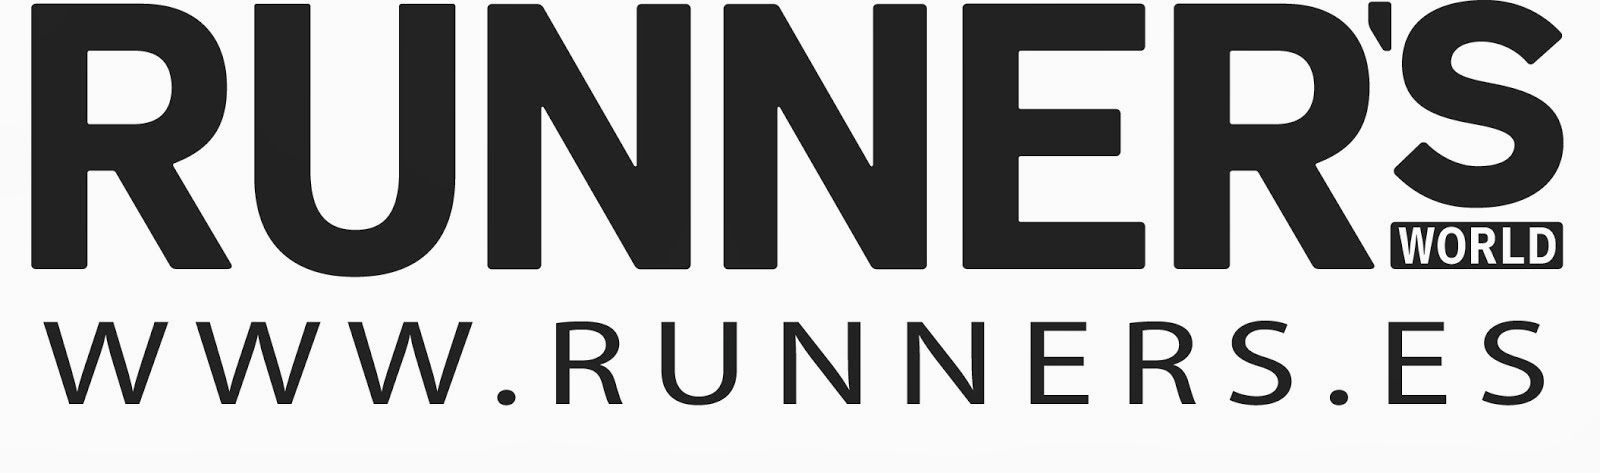 Web  revista RUNNER'S: